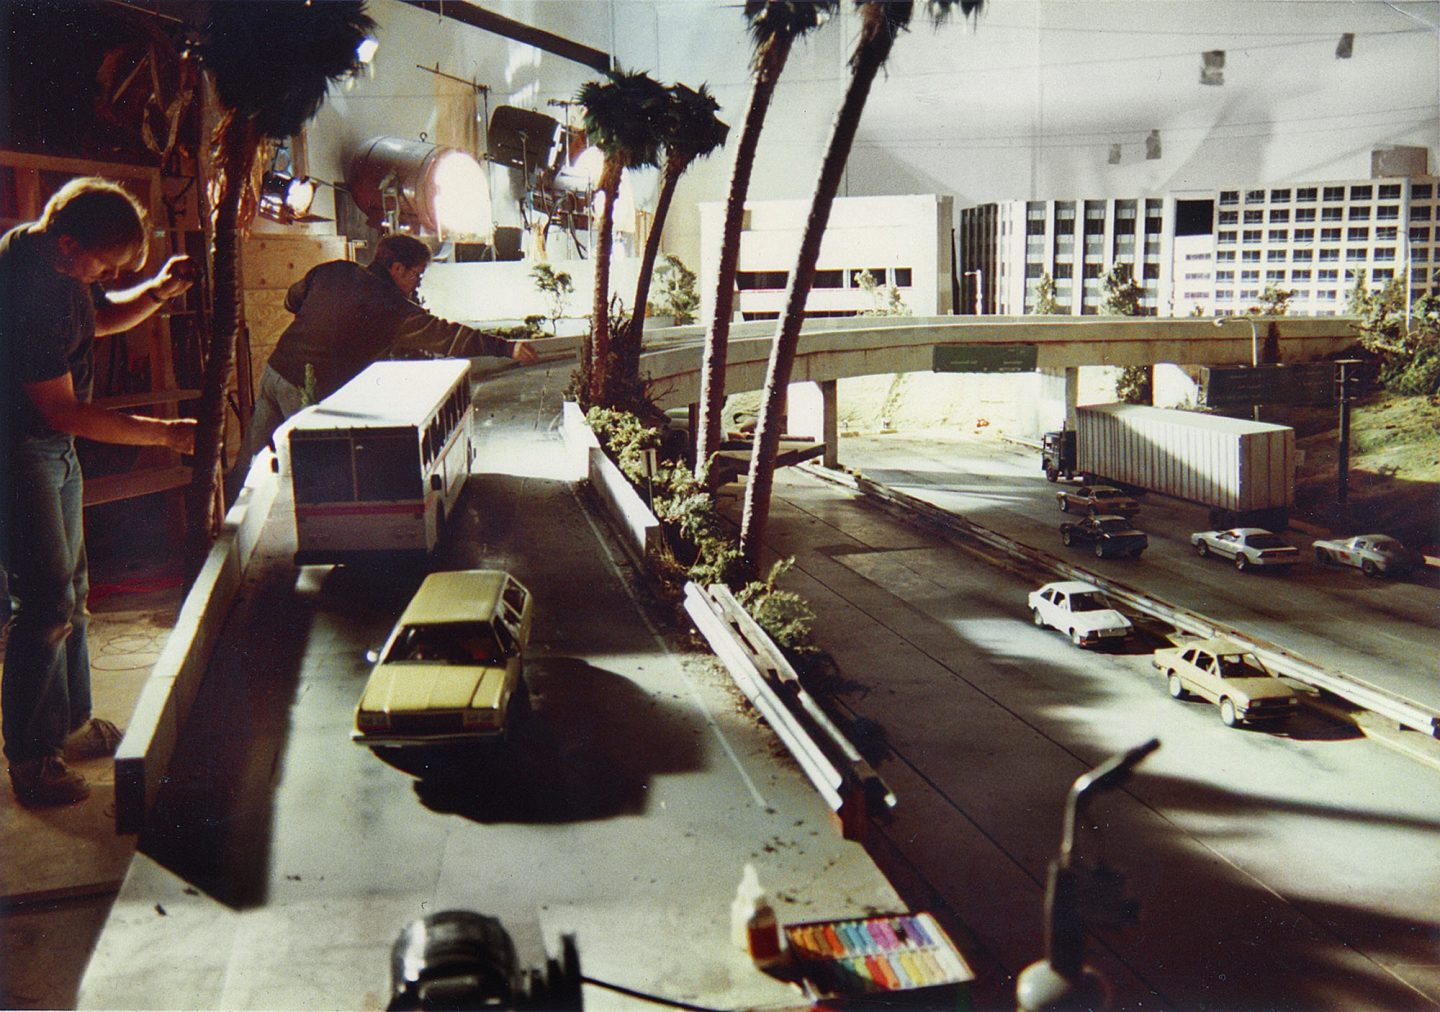 Setting up the freeway miniature. Robert Skotak is leaning over the freeway at rear.